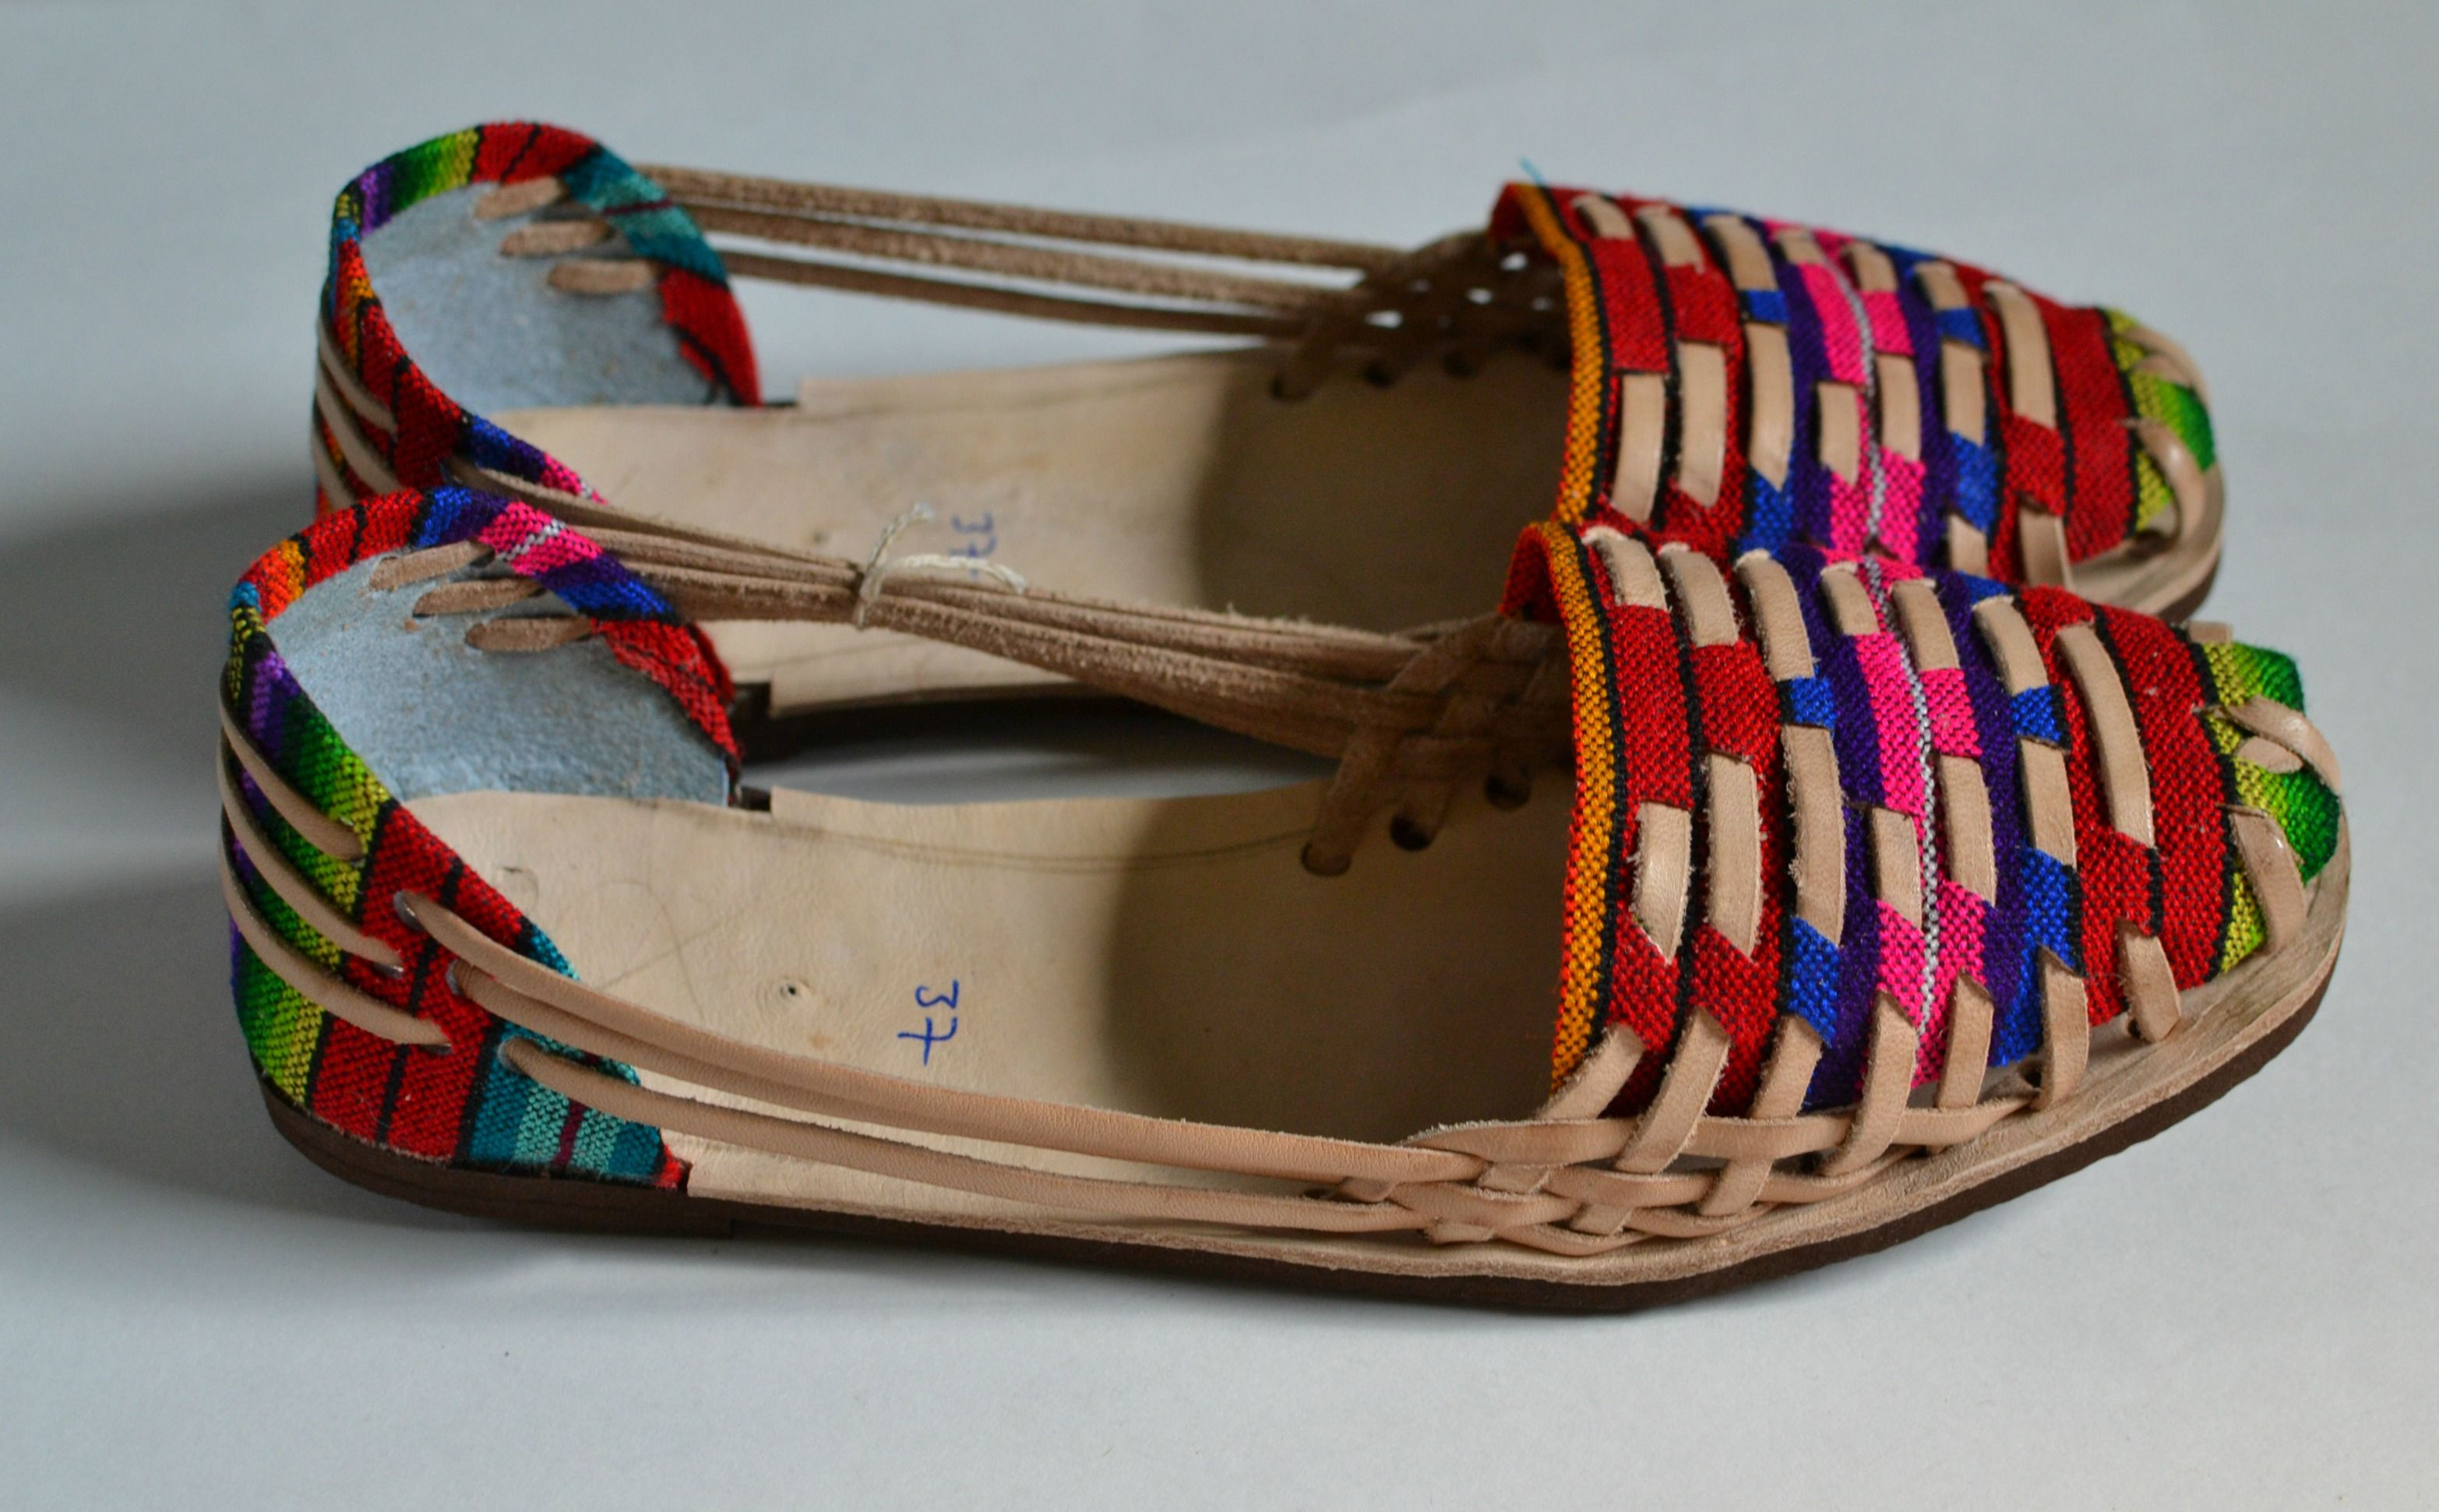 c2919be89421 Authentic caites huaraches handcrafted by artisans in Guatemala.